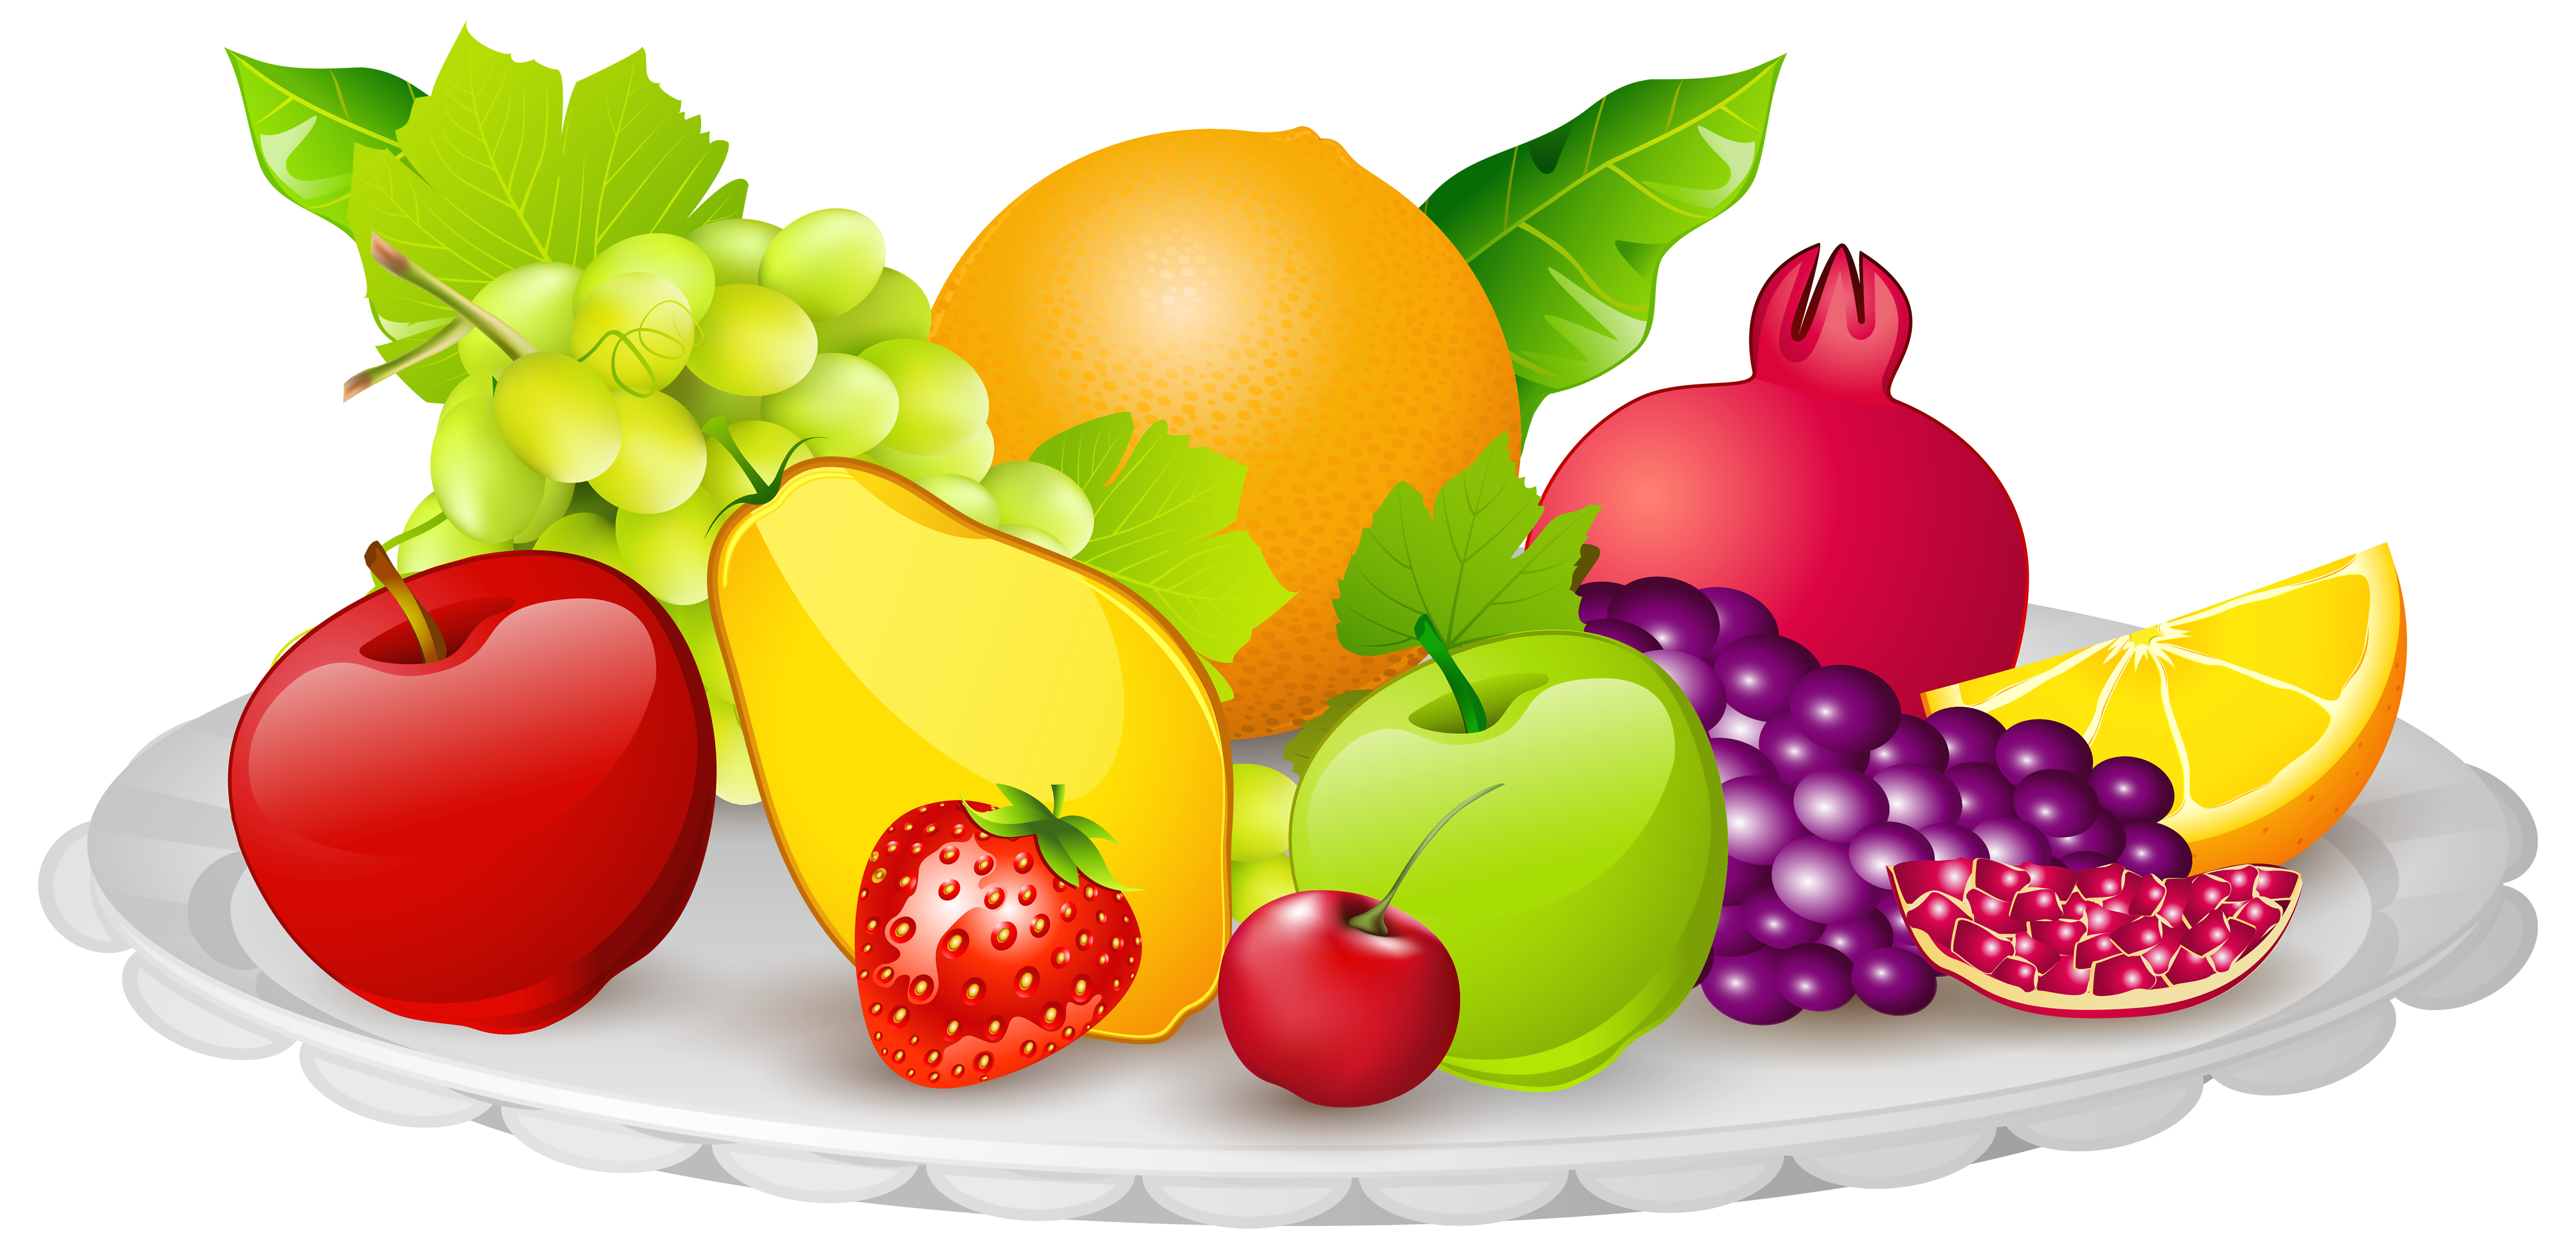 Fruits clipart png. Plate with image gallery